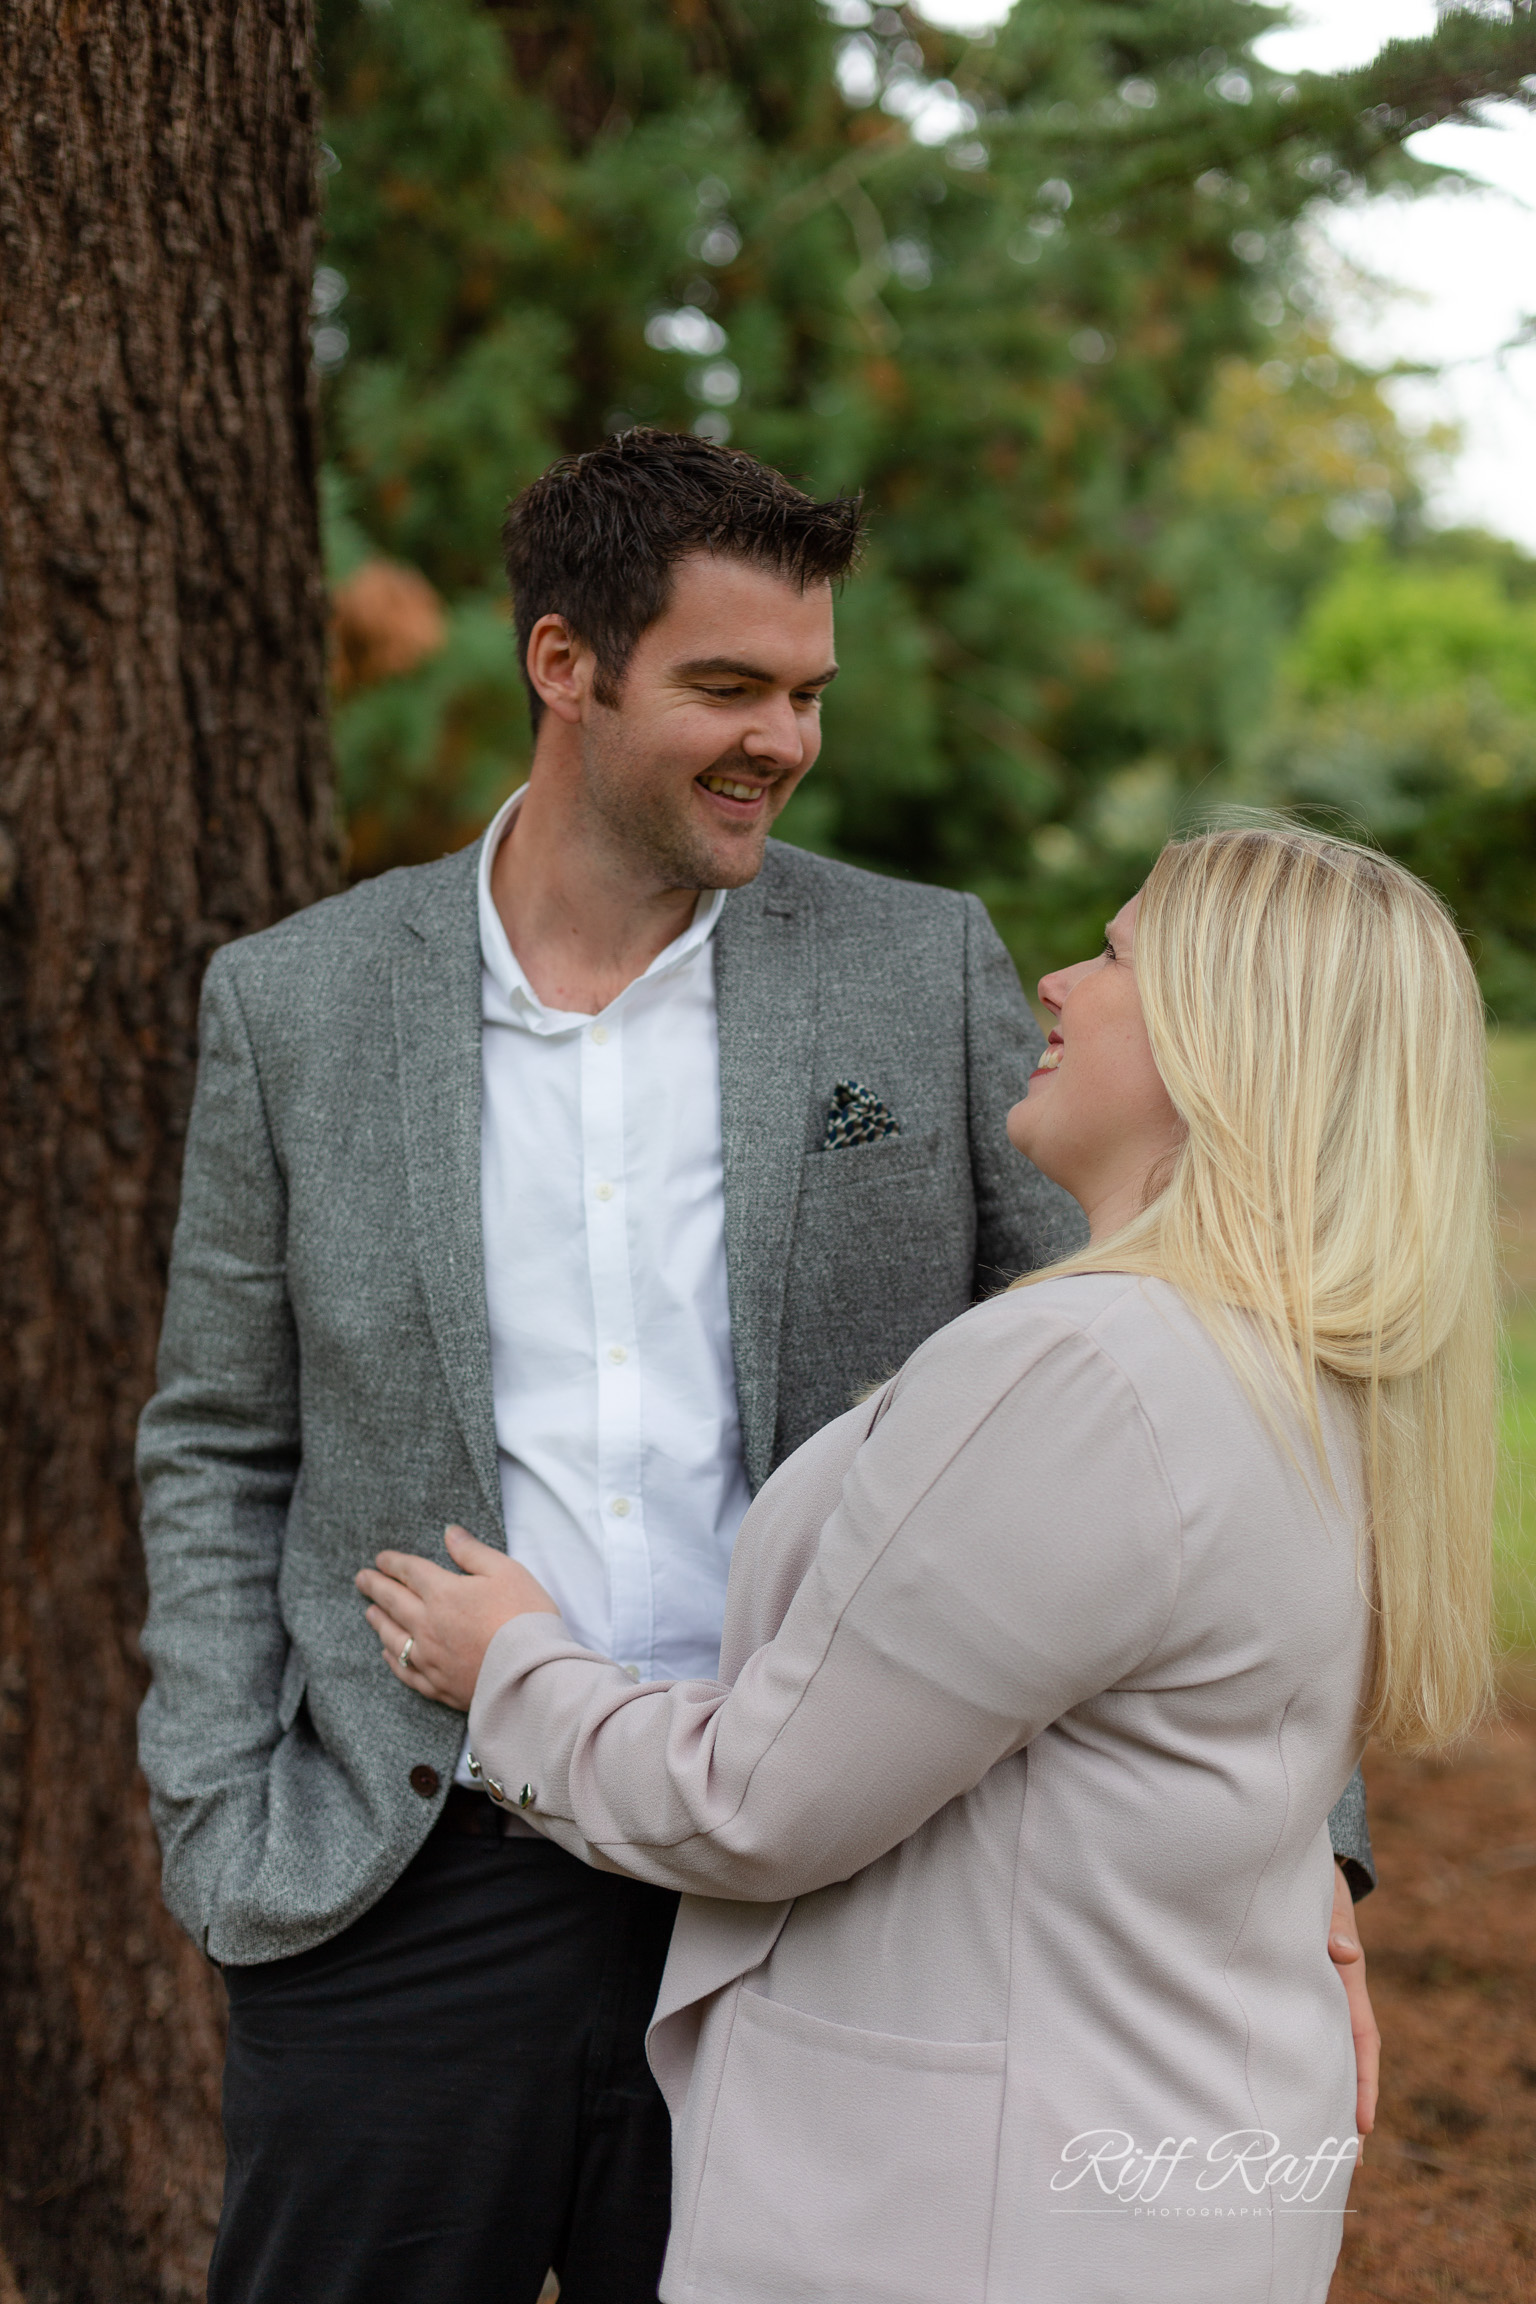 Fiona & Adam Engagement Shoot Blog-004.jpg